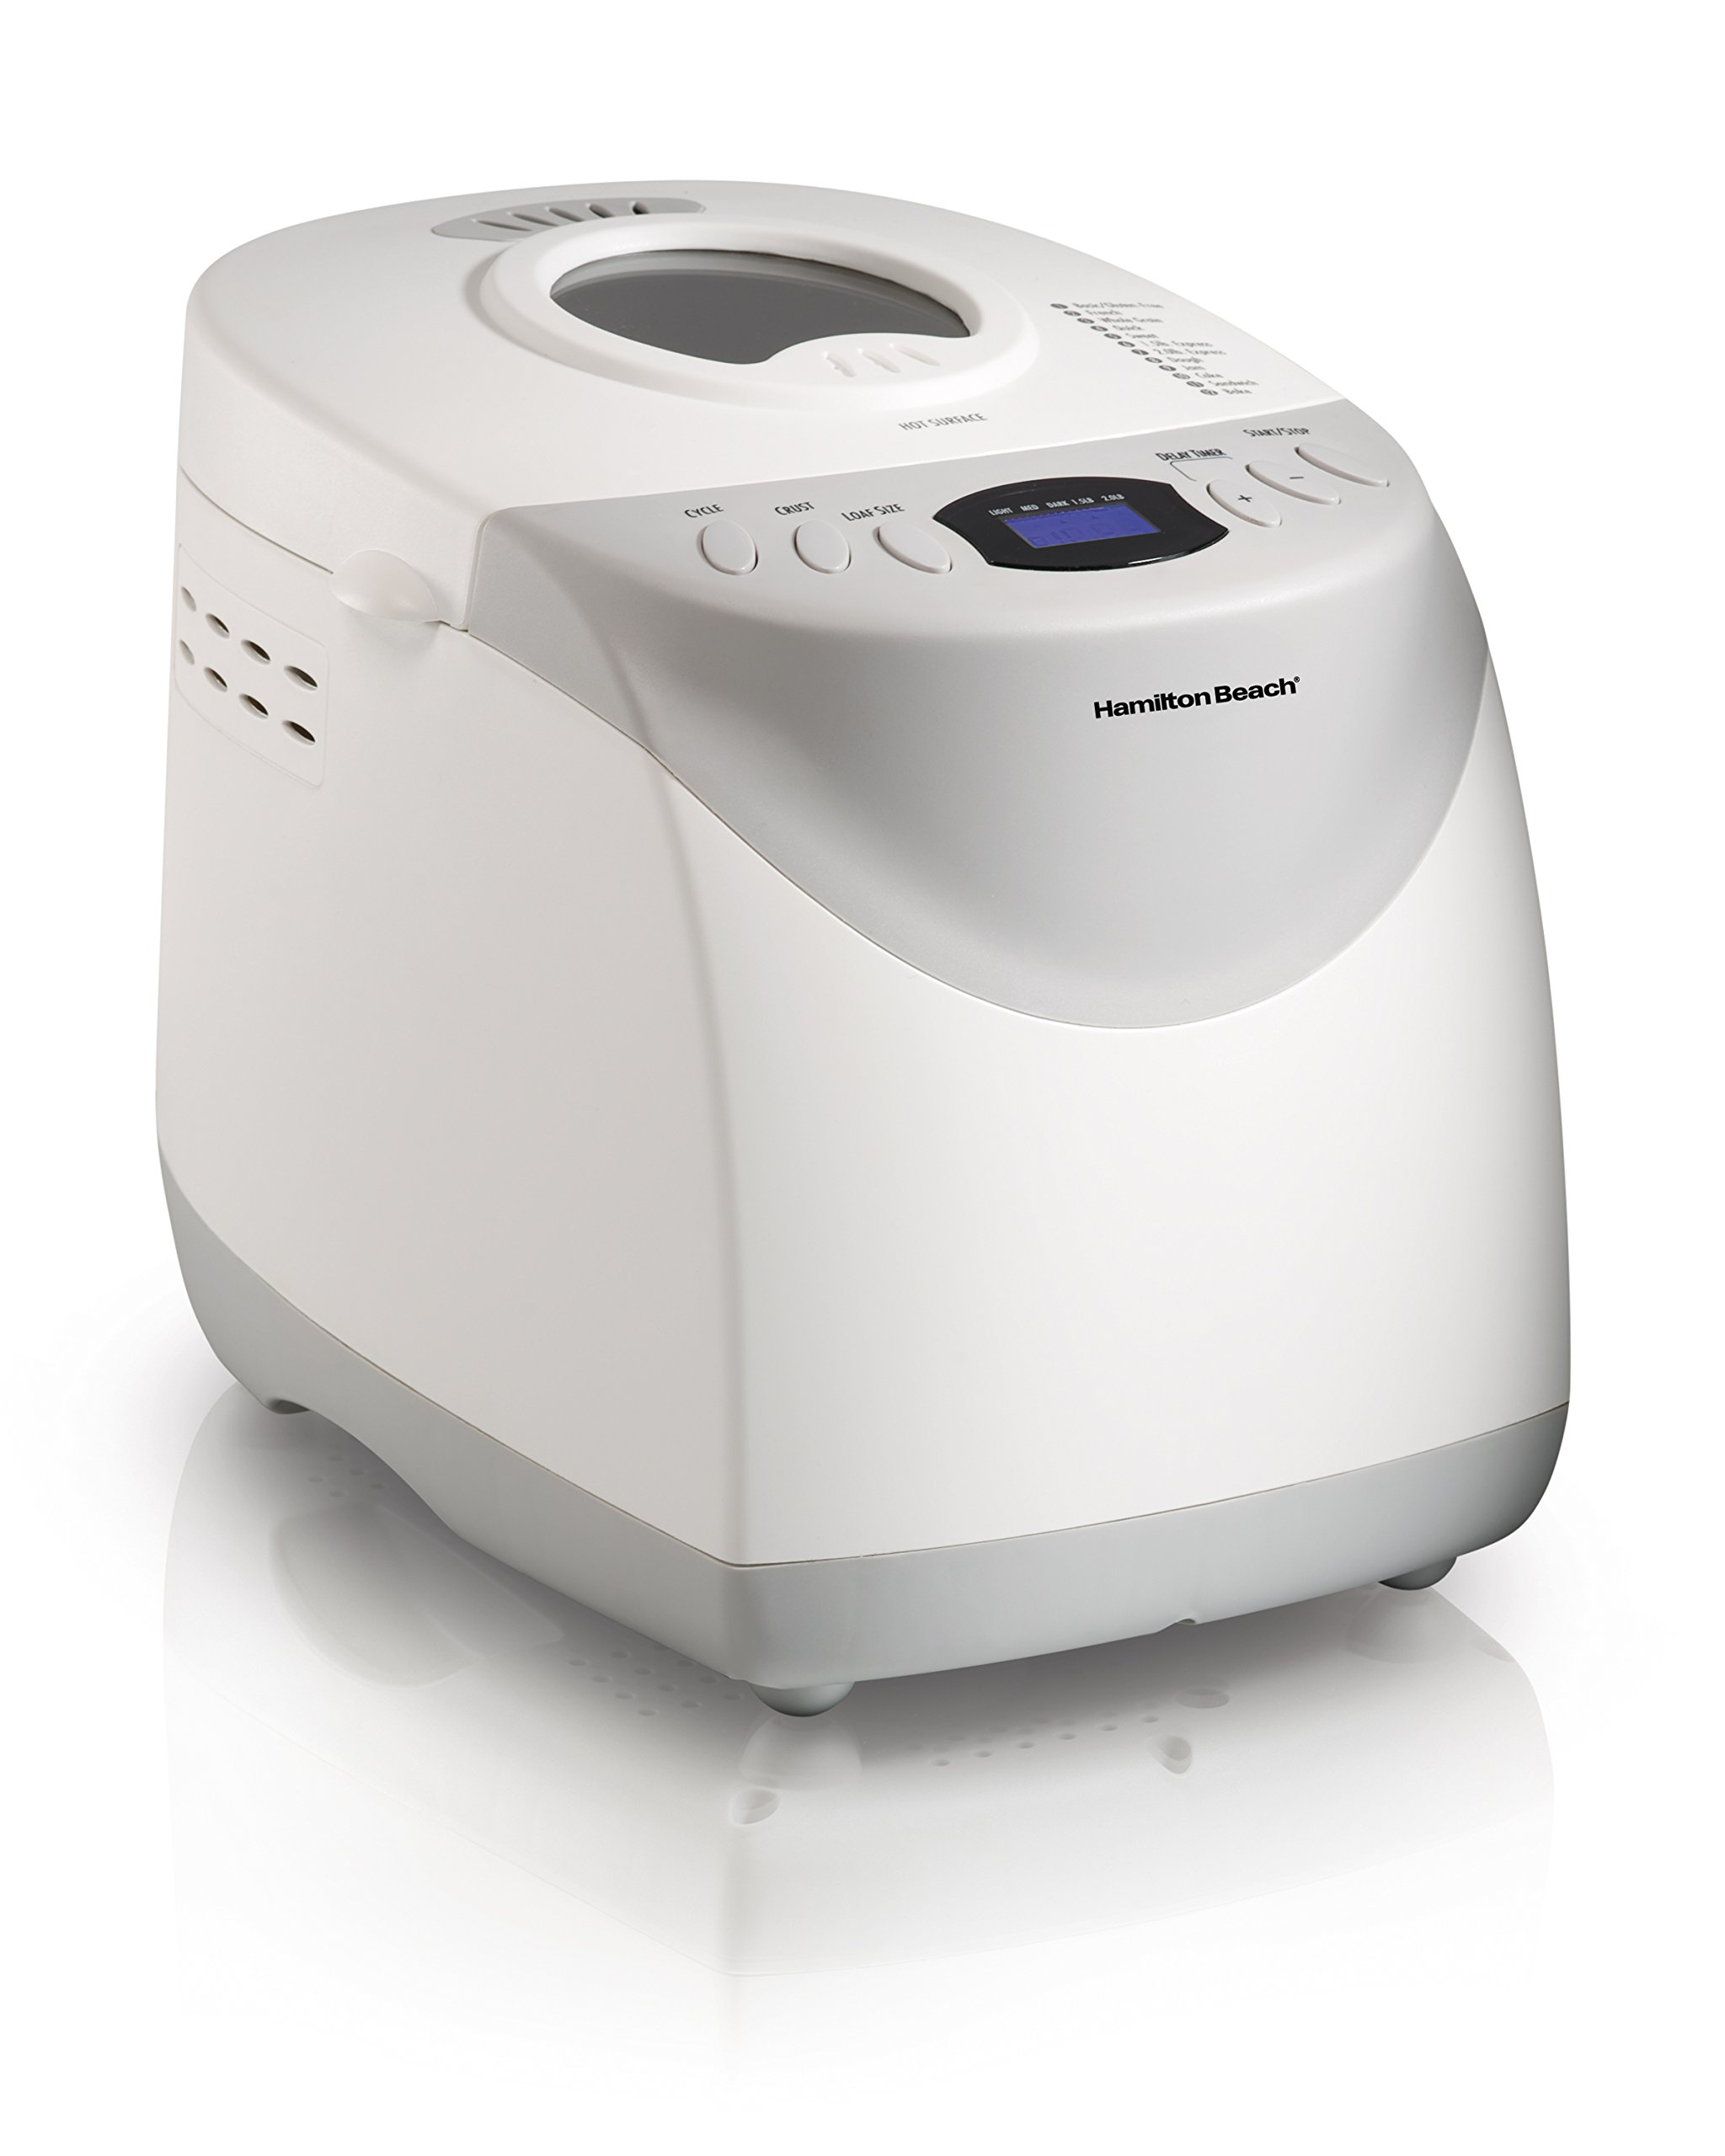 Hamilton Beach 29881 2-Pound Bread Maker, White (Discontinued)